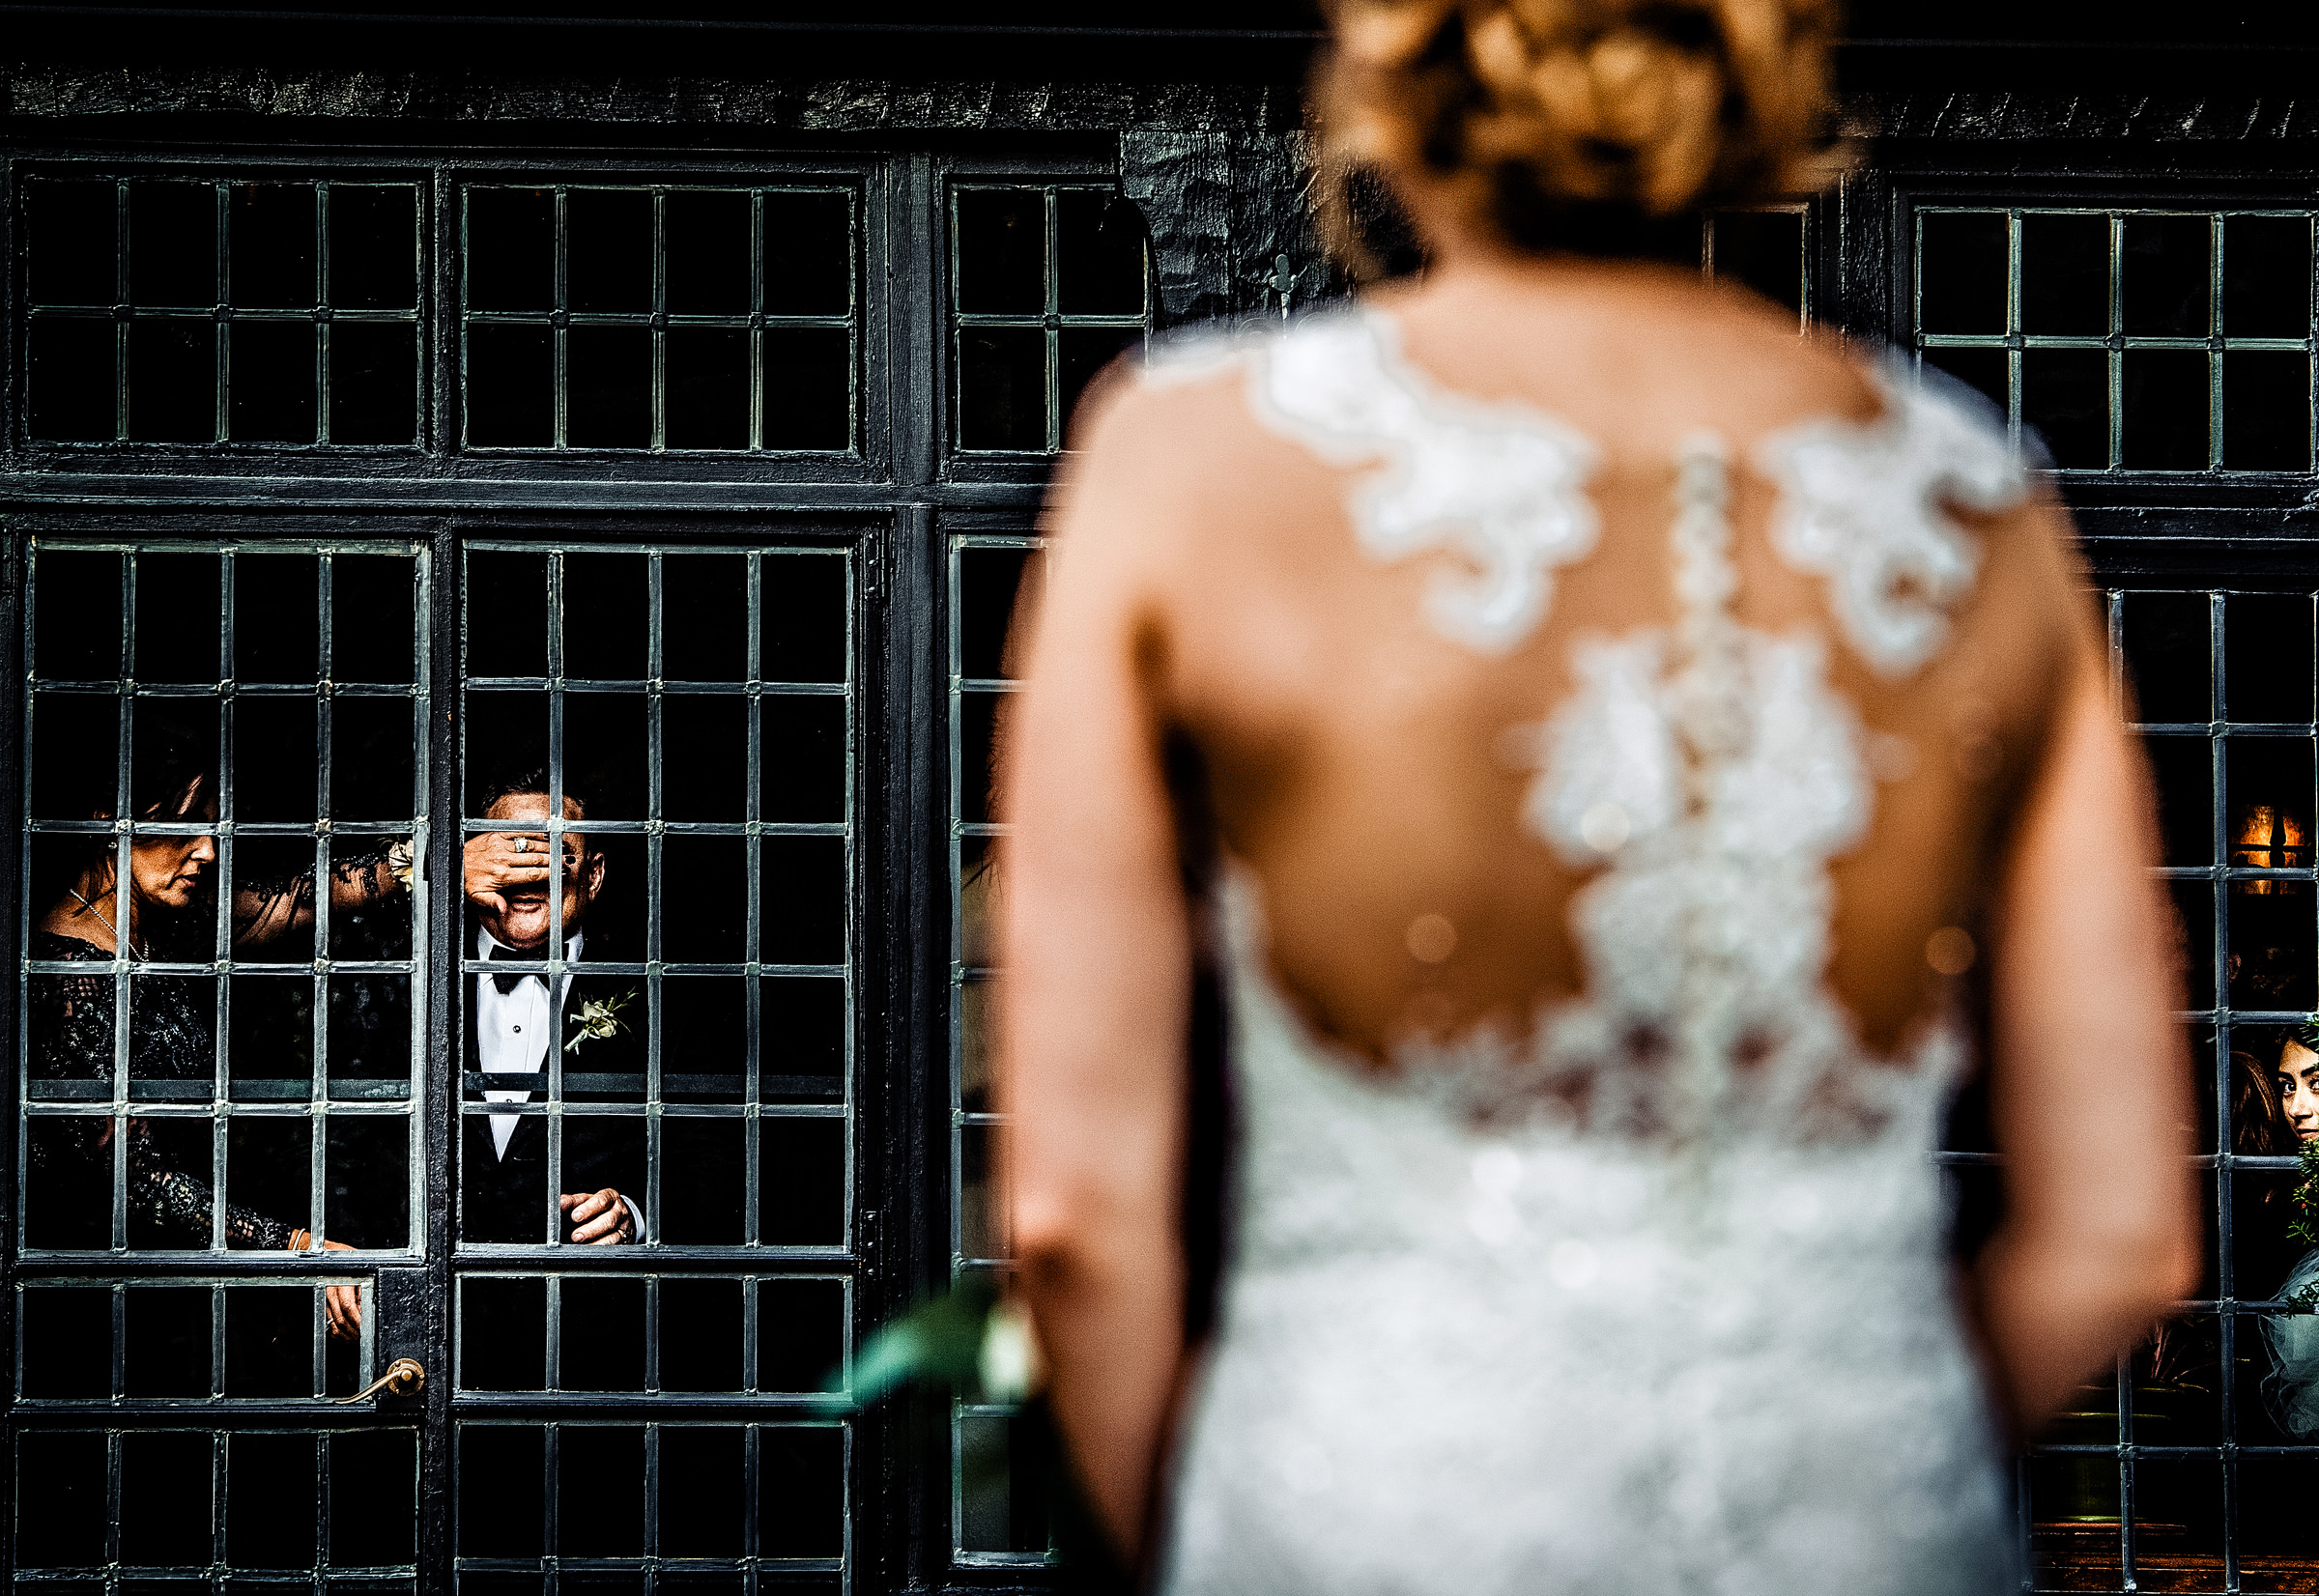 Bridesmaid cover grooms eyes as bride approaches - photo by Jeff Tisman Photography, New York